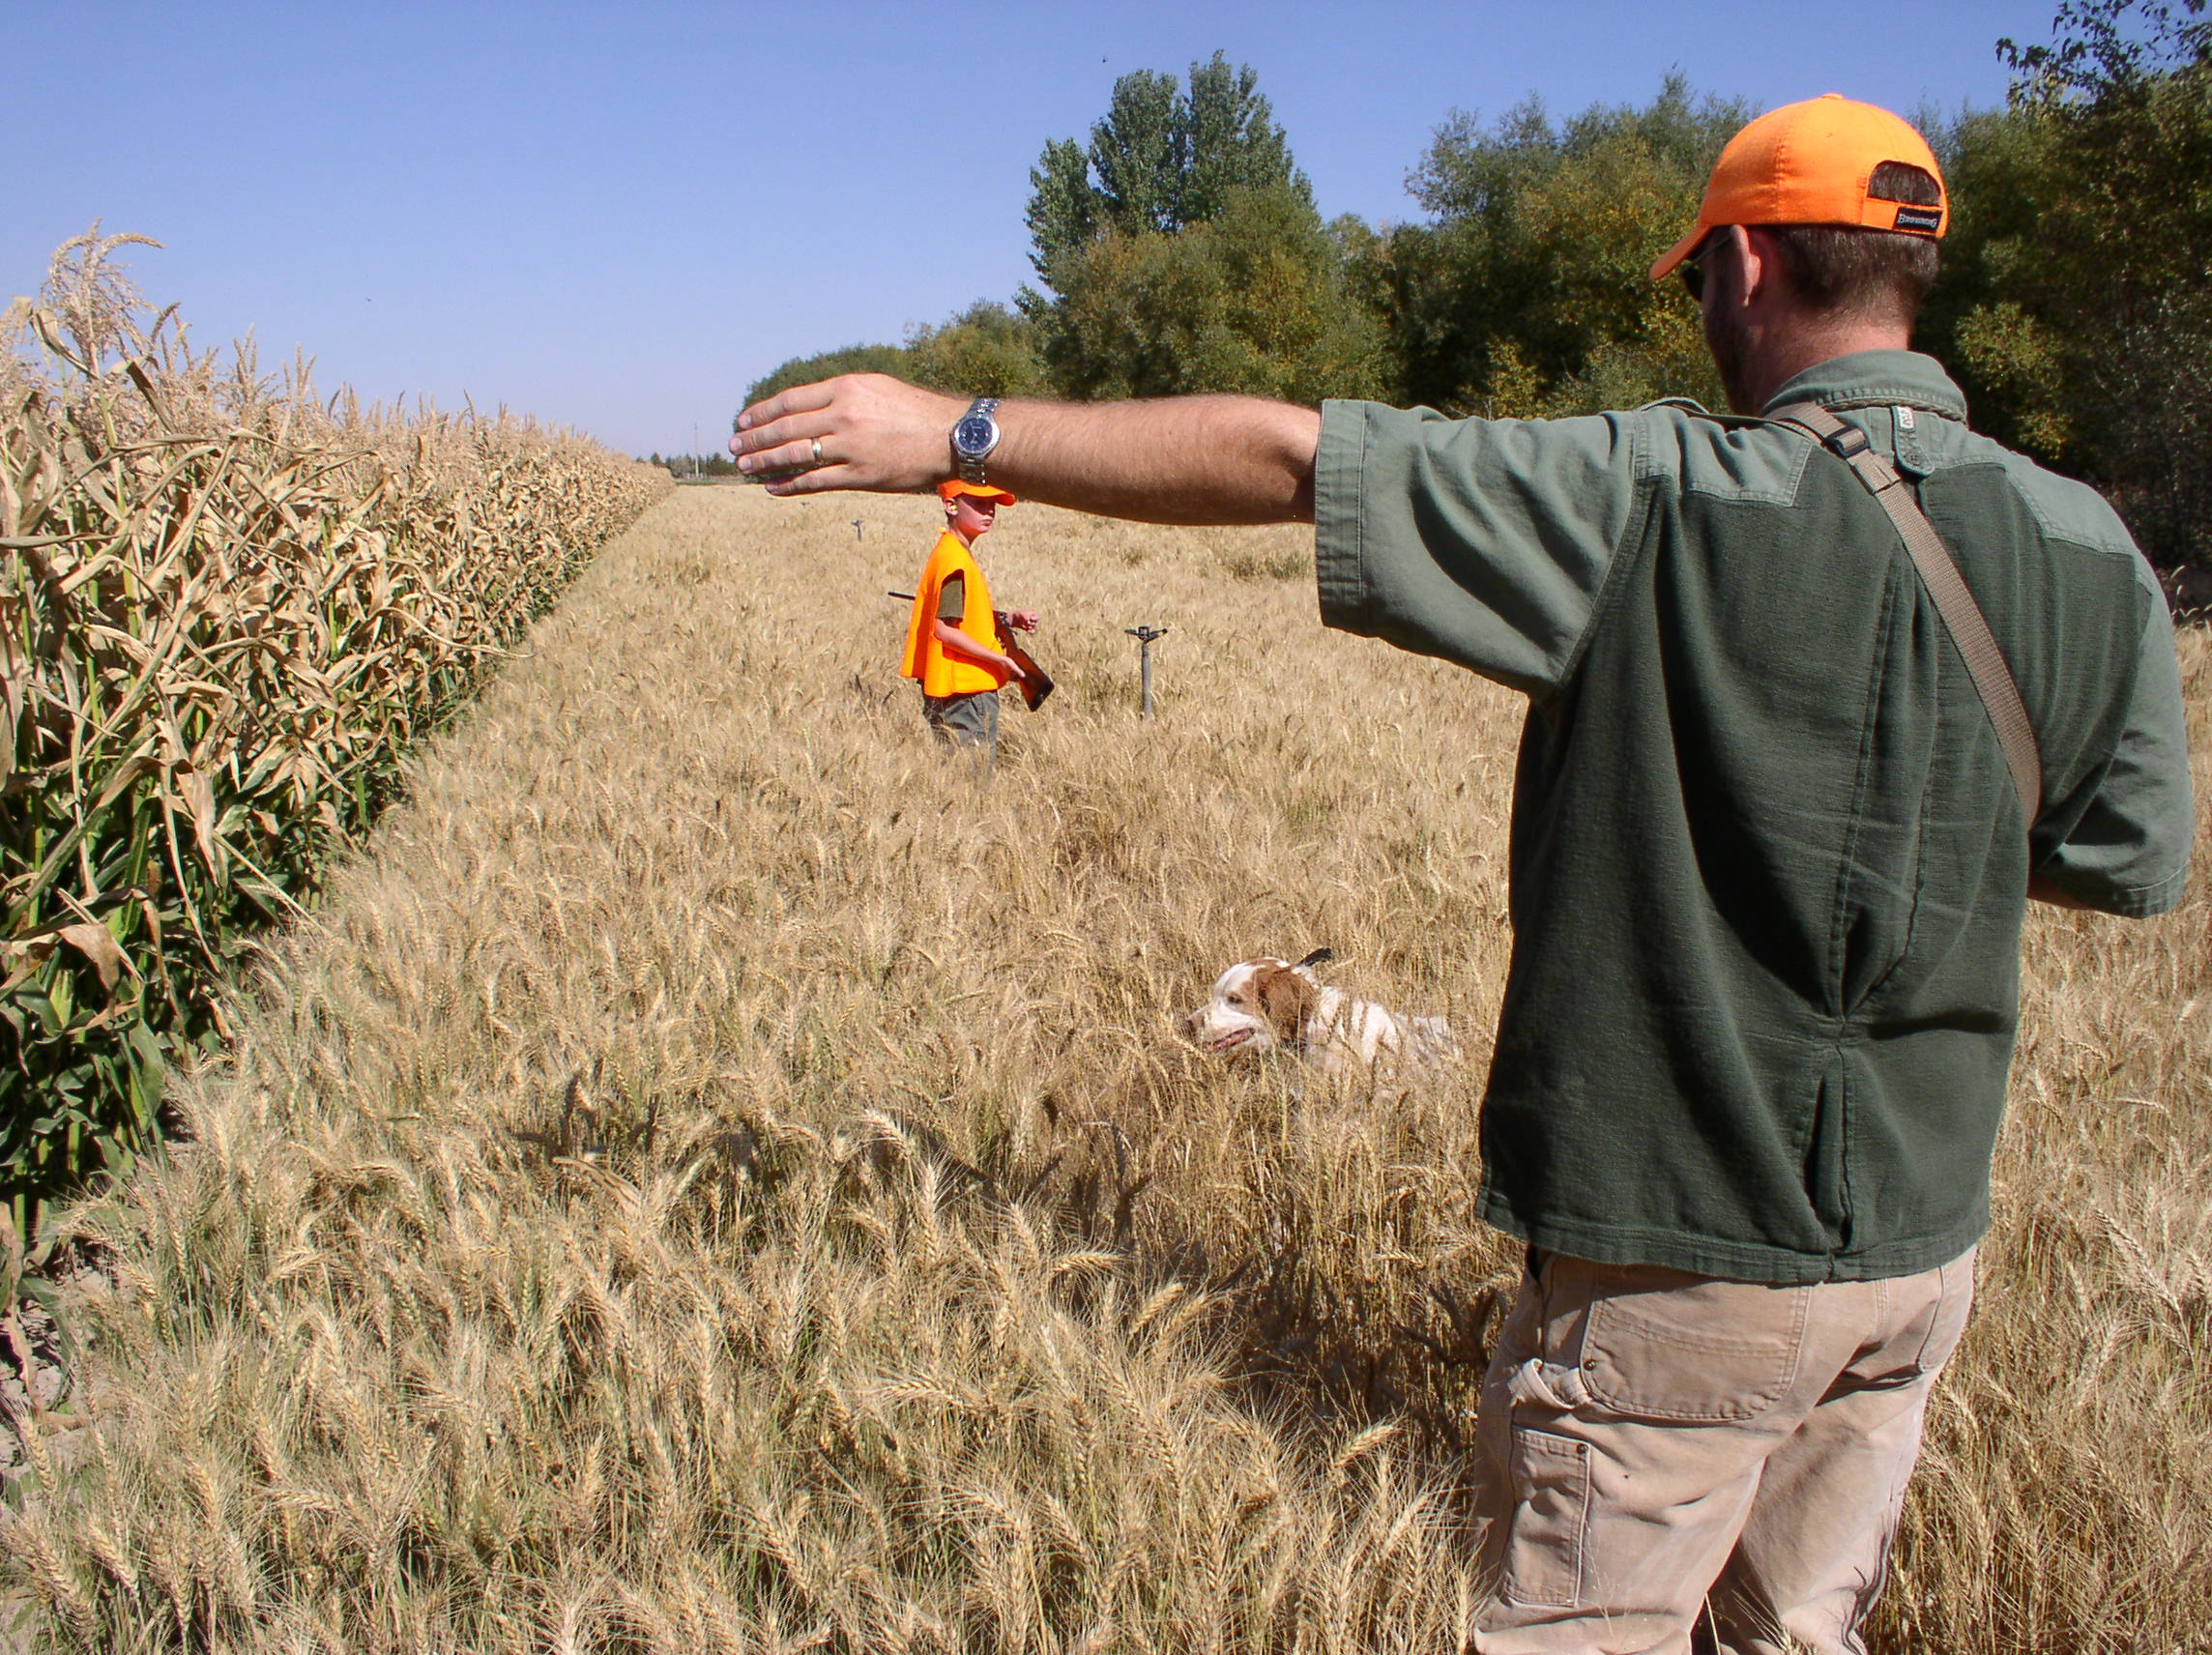 Pheasant hunting with youth